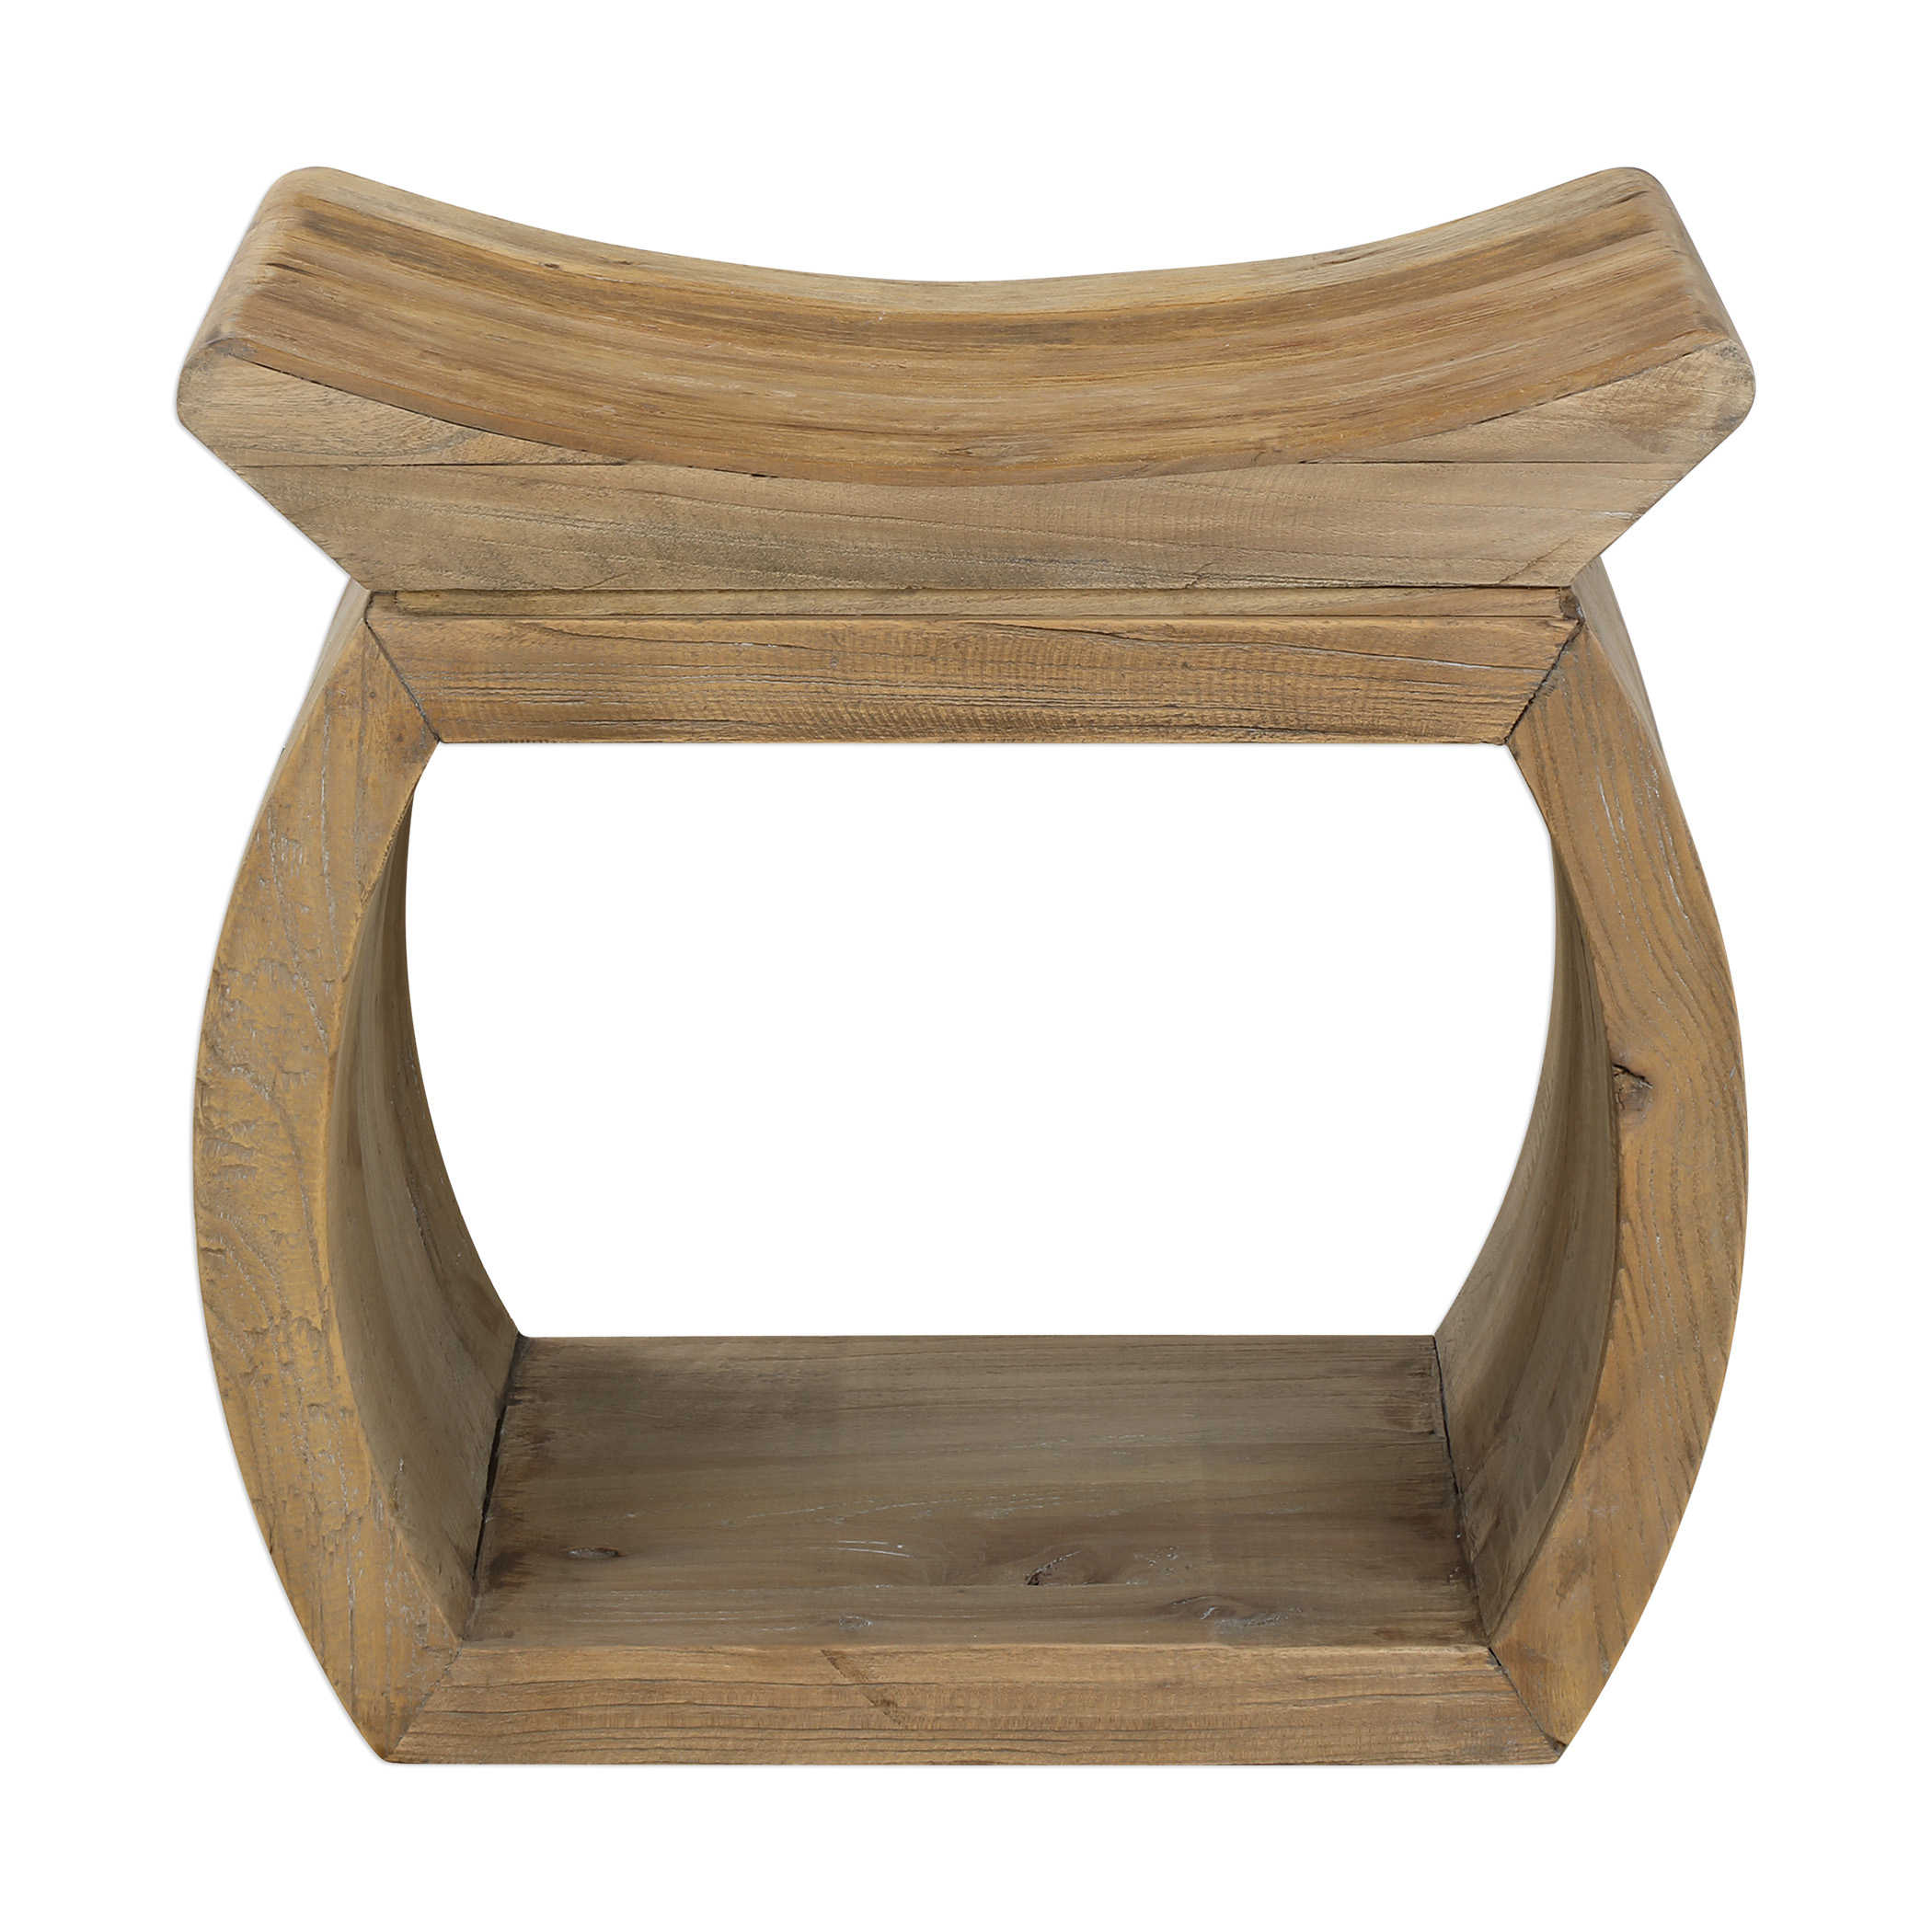 Scooped Elm Accent Stool